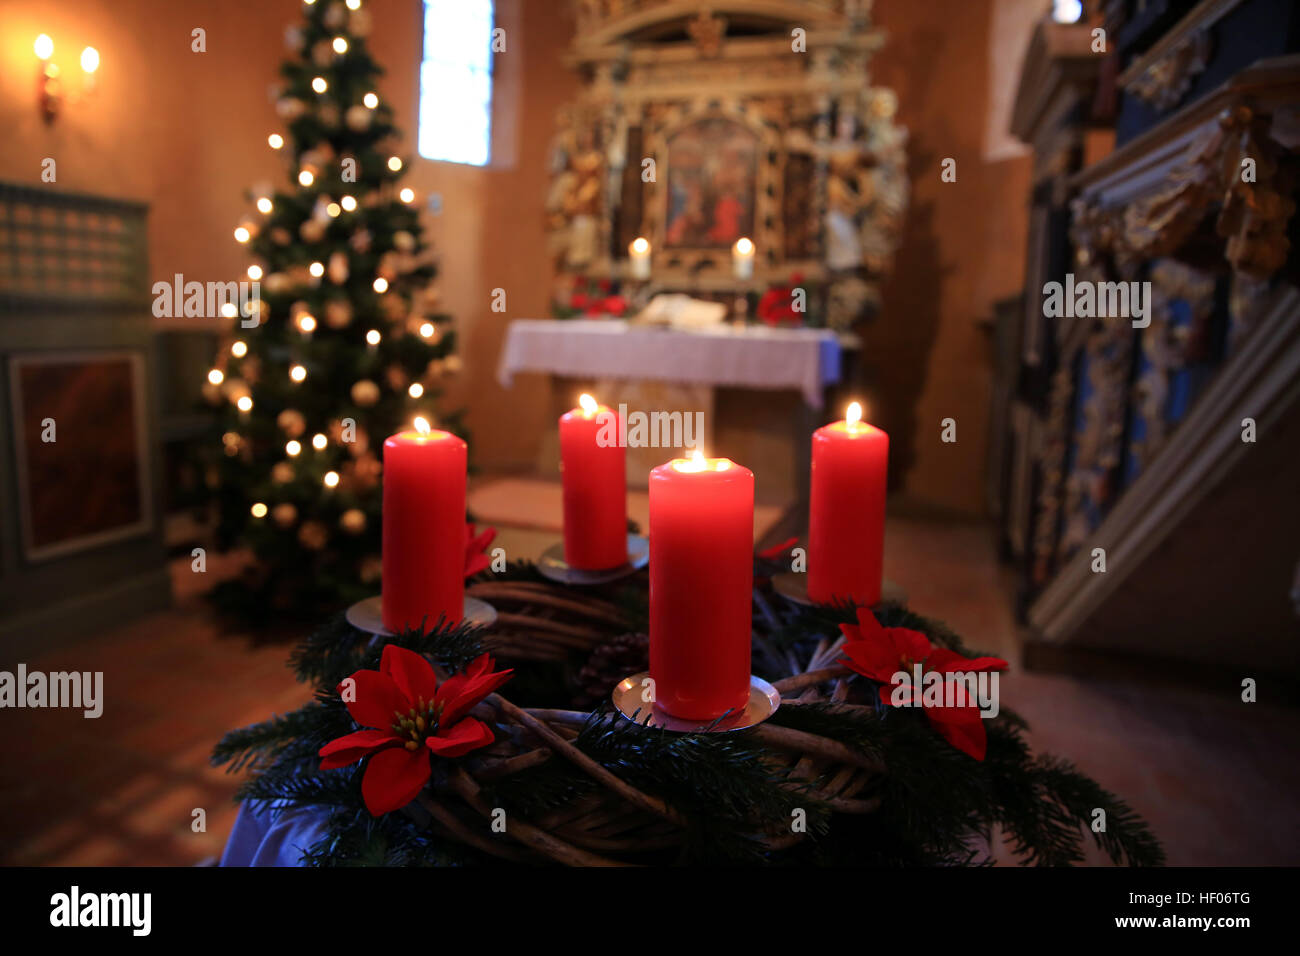 Magdeburg Germany 24th Dec 2016 An Advent Wreath Can Be Seen Inside